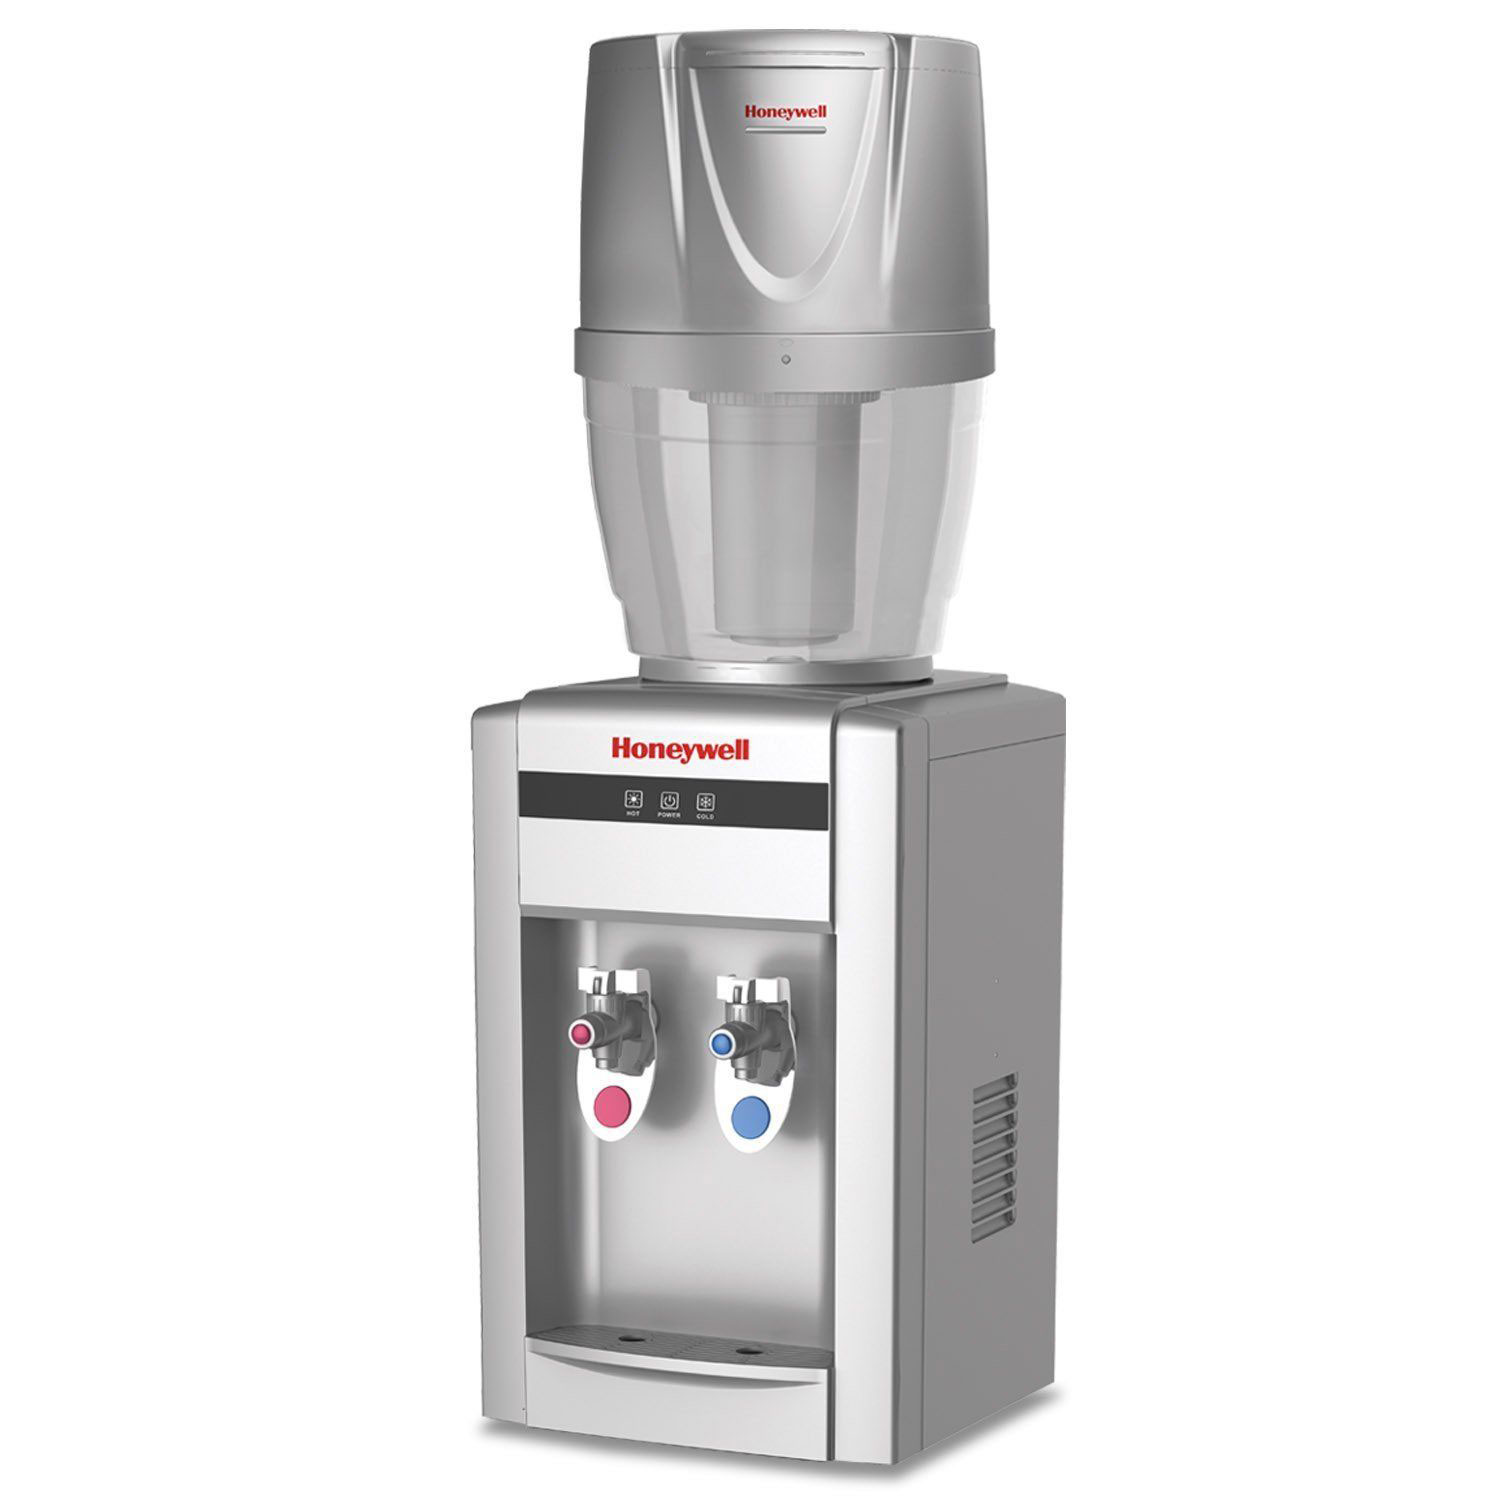 Honeywell 21-Inch Tabletop Water Cooler Dispenser with Filtration System, Silver - HWB2052SHWB101S